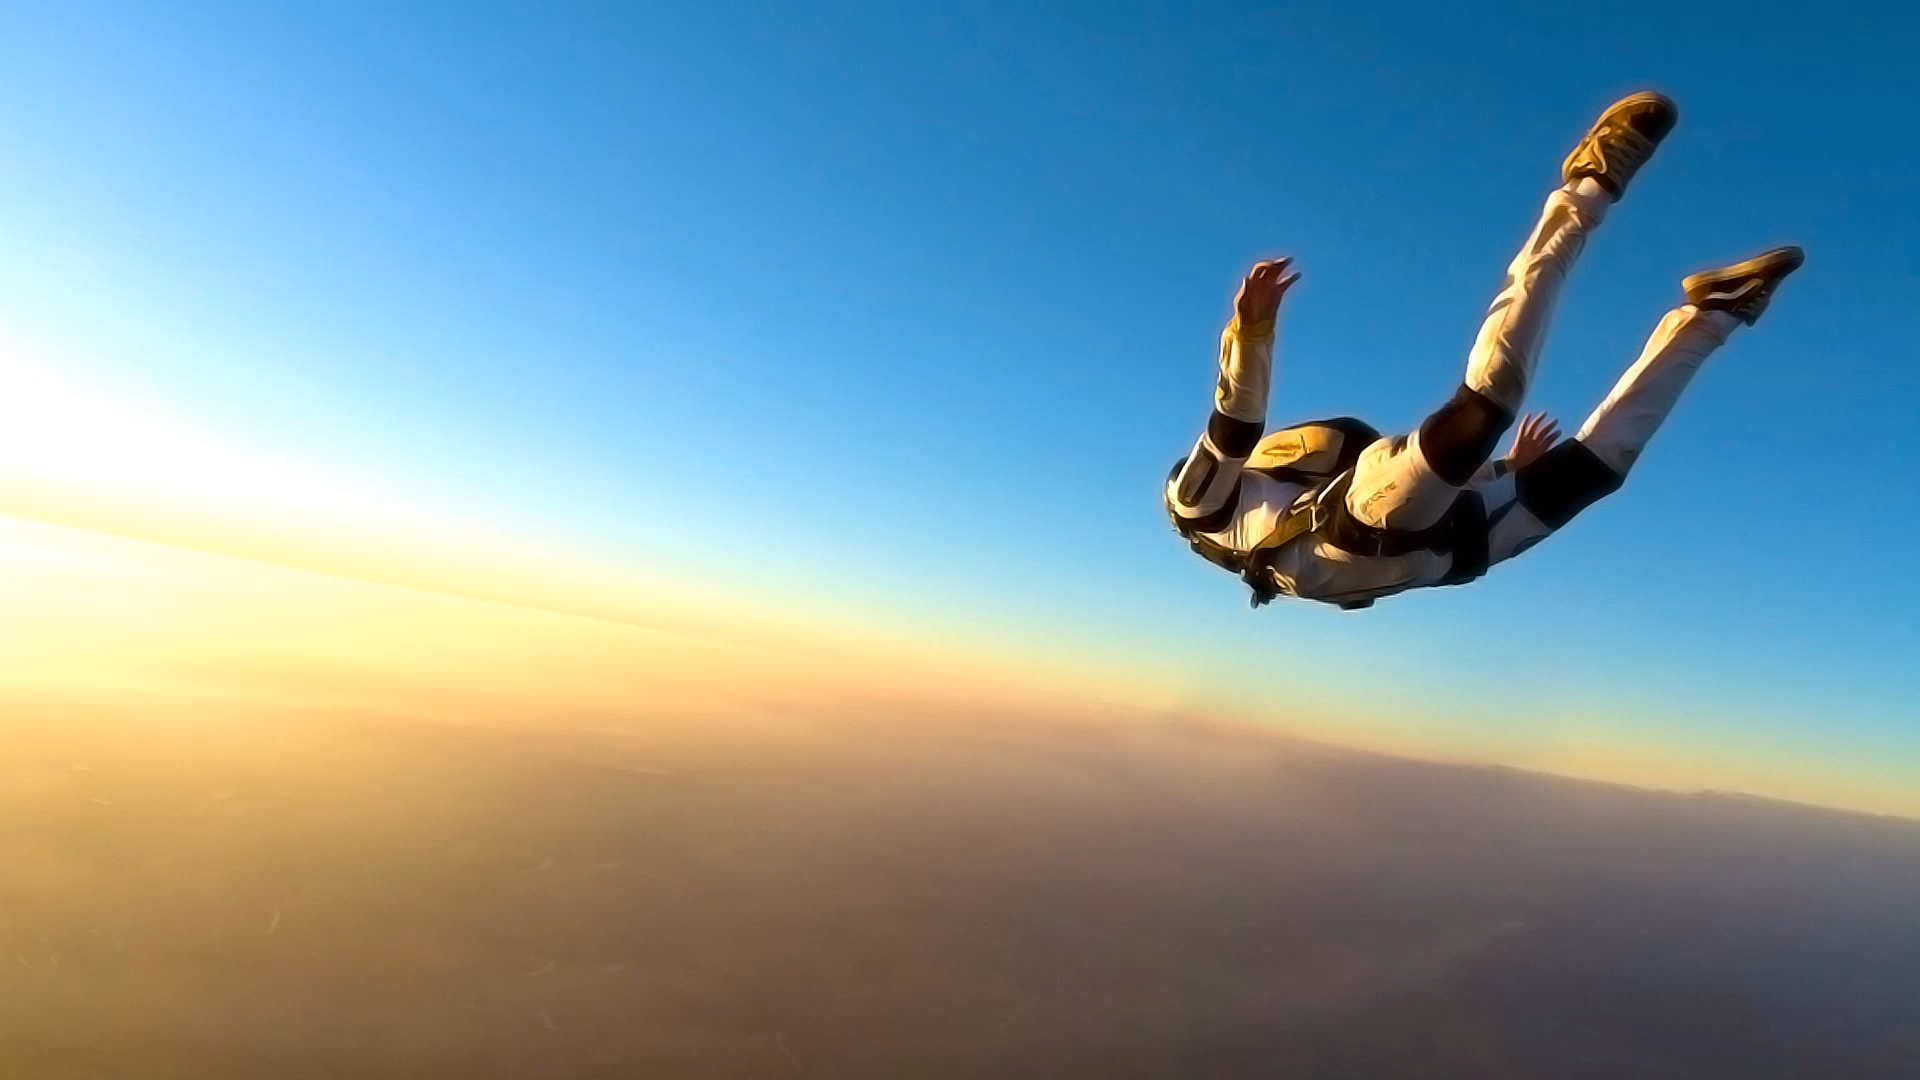 Skydive Free Fall Sports Wallpaper: How A Skydiving Trip Changed My Life